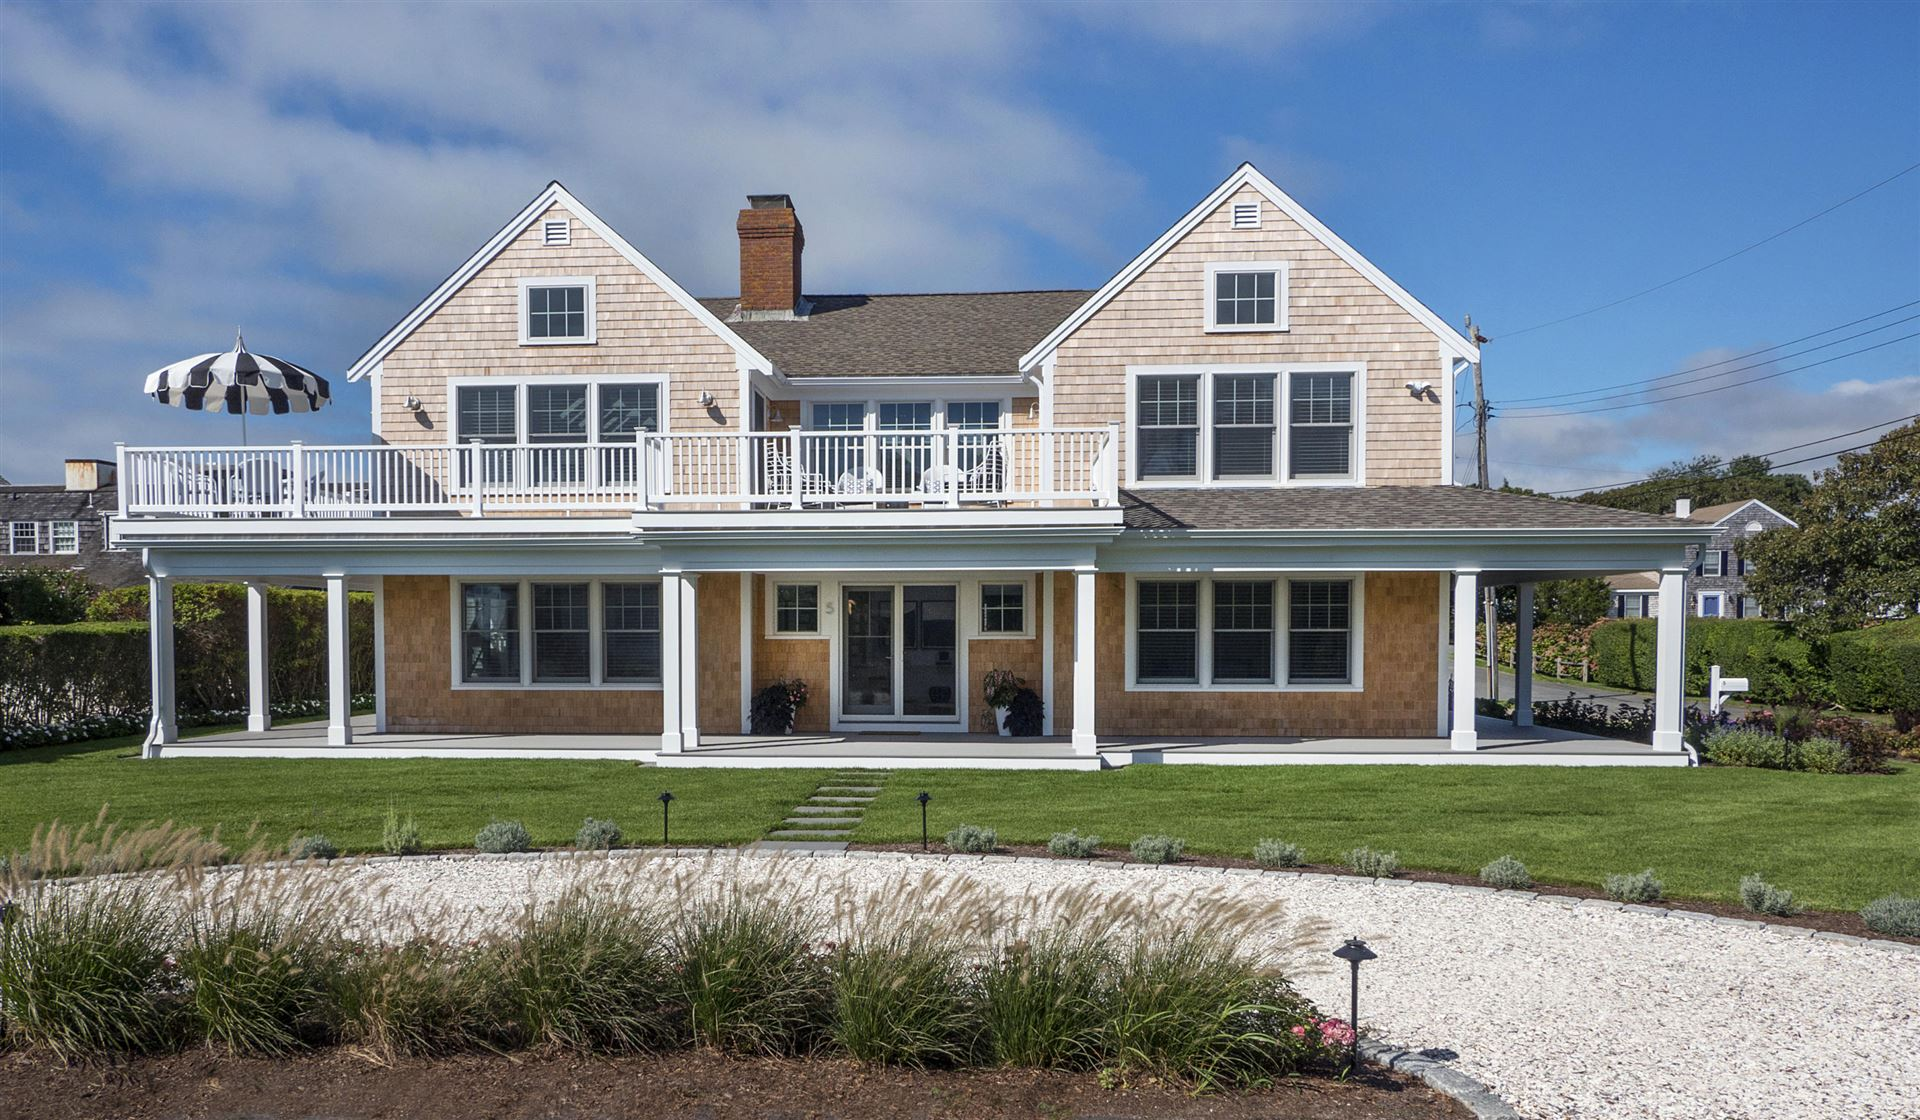 5 Flake Yard Road, Harwich Port, MA 02646 - #: 22000531